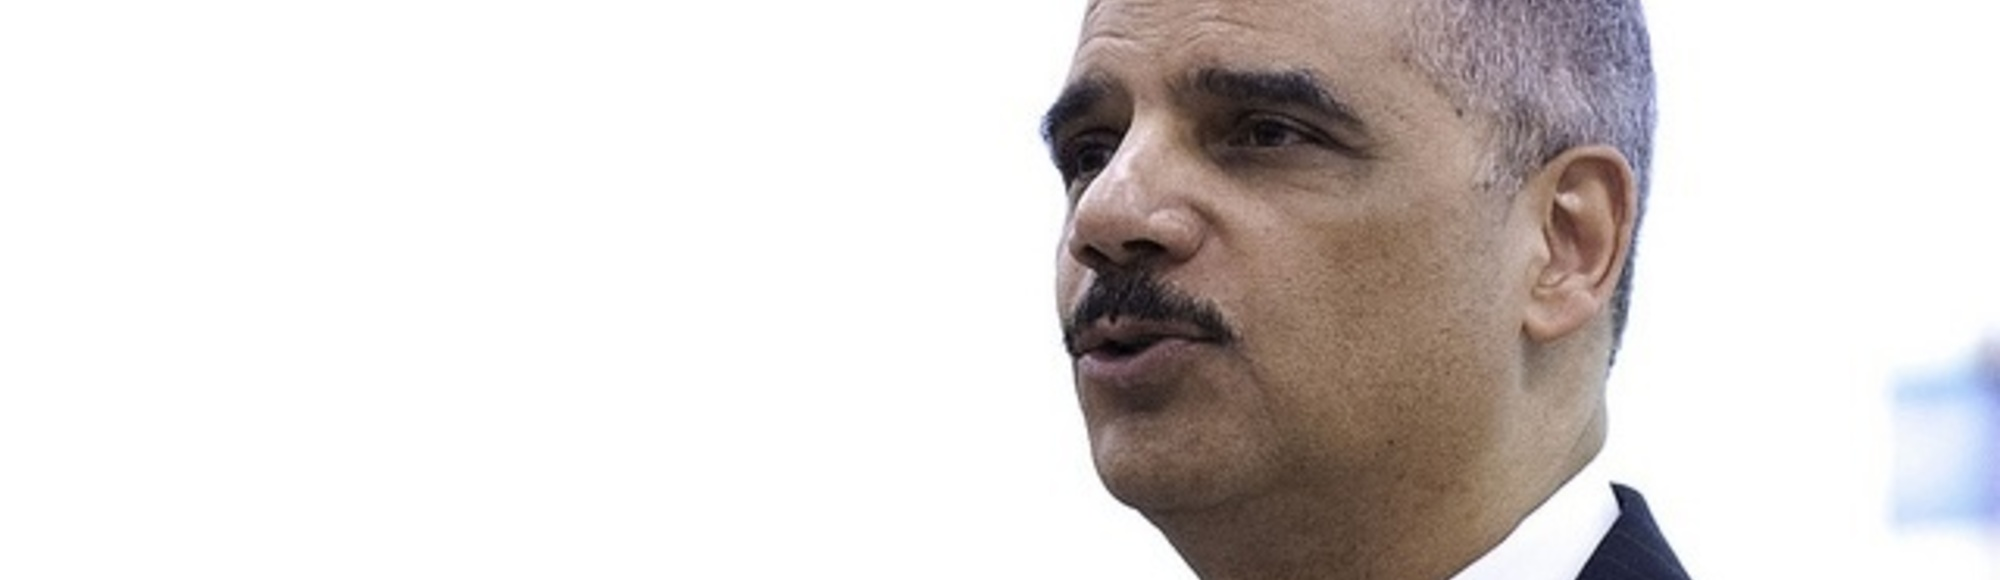 Eric Holder Speaks Out Against Mandatory Minimums, Gives Us a Sliver of Hope